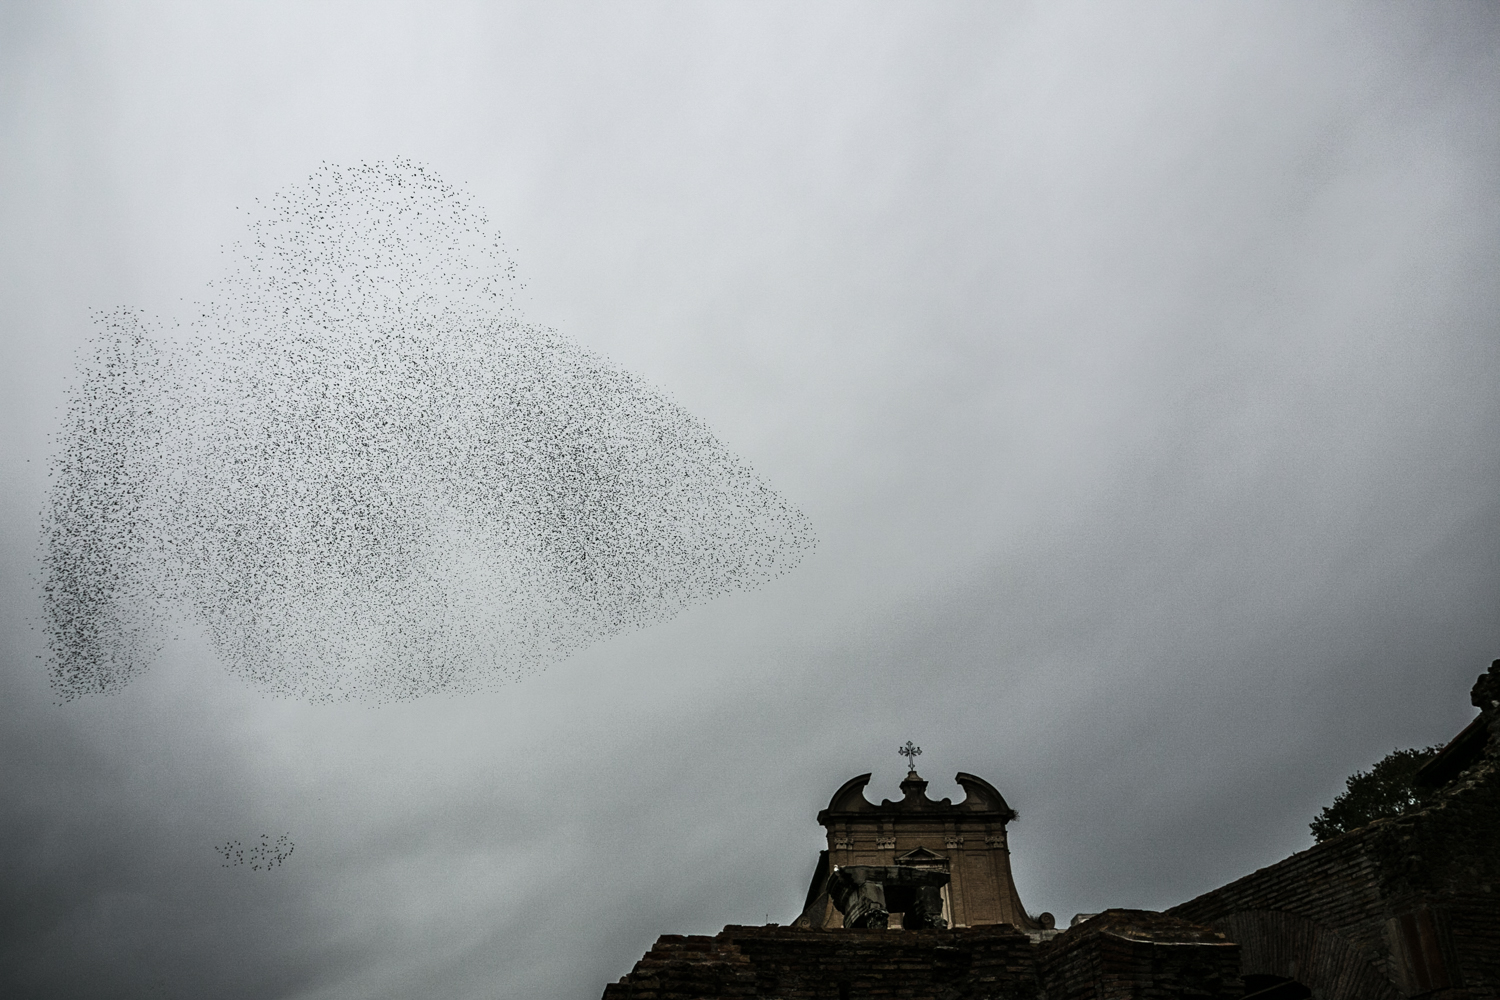 Flock of starlings flying over the Forum in Rome, Italy.